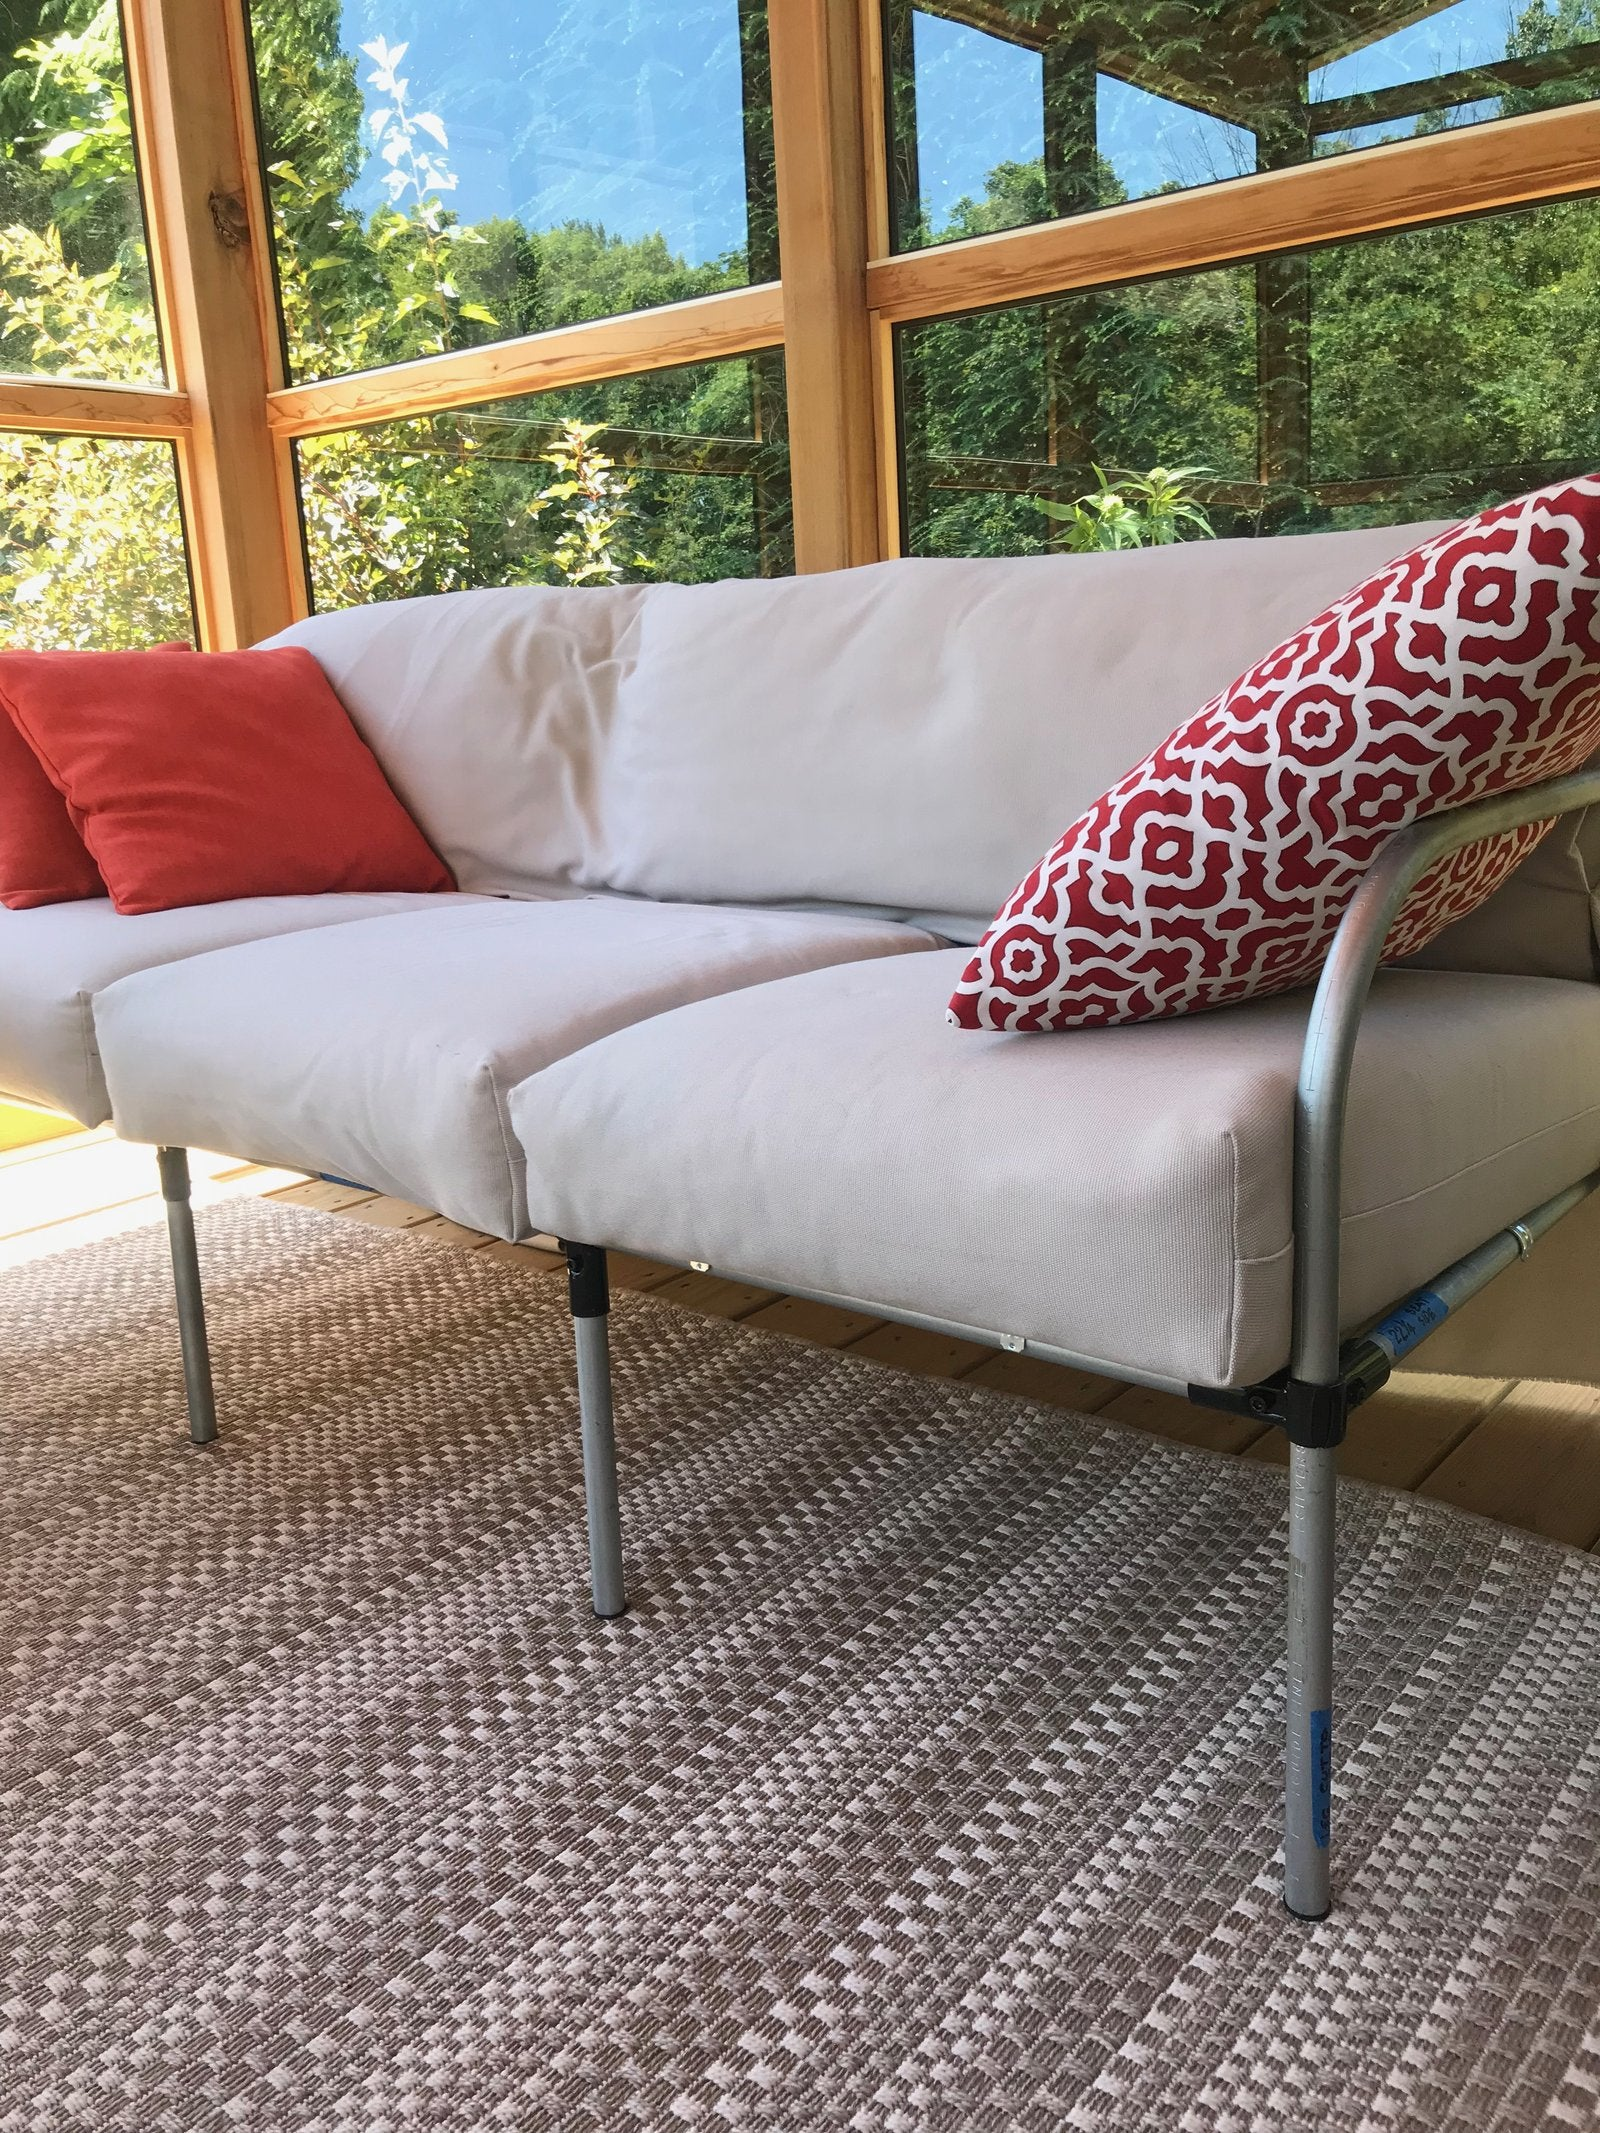 Outdoor Patio Couch Made Out Of Metal Pipe